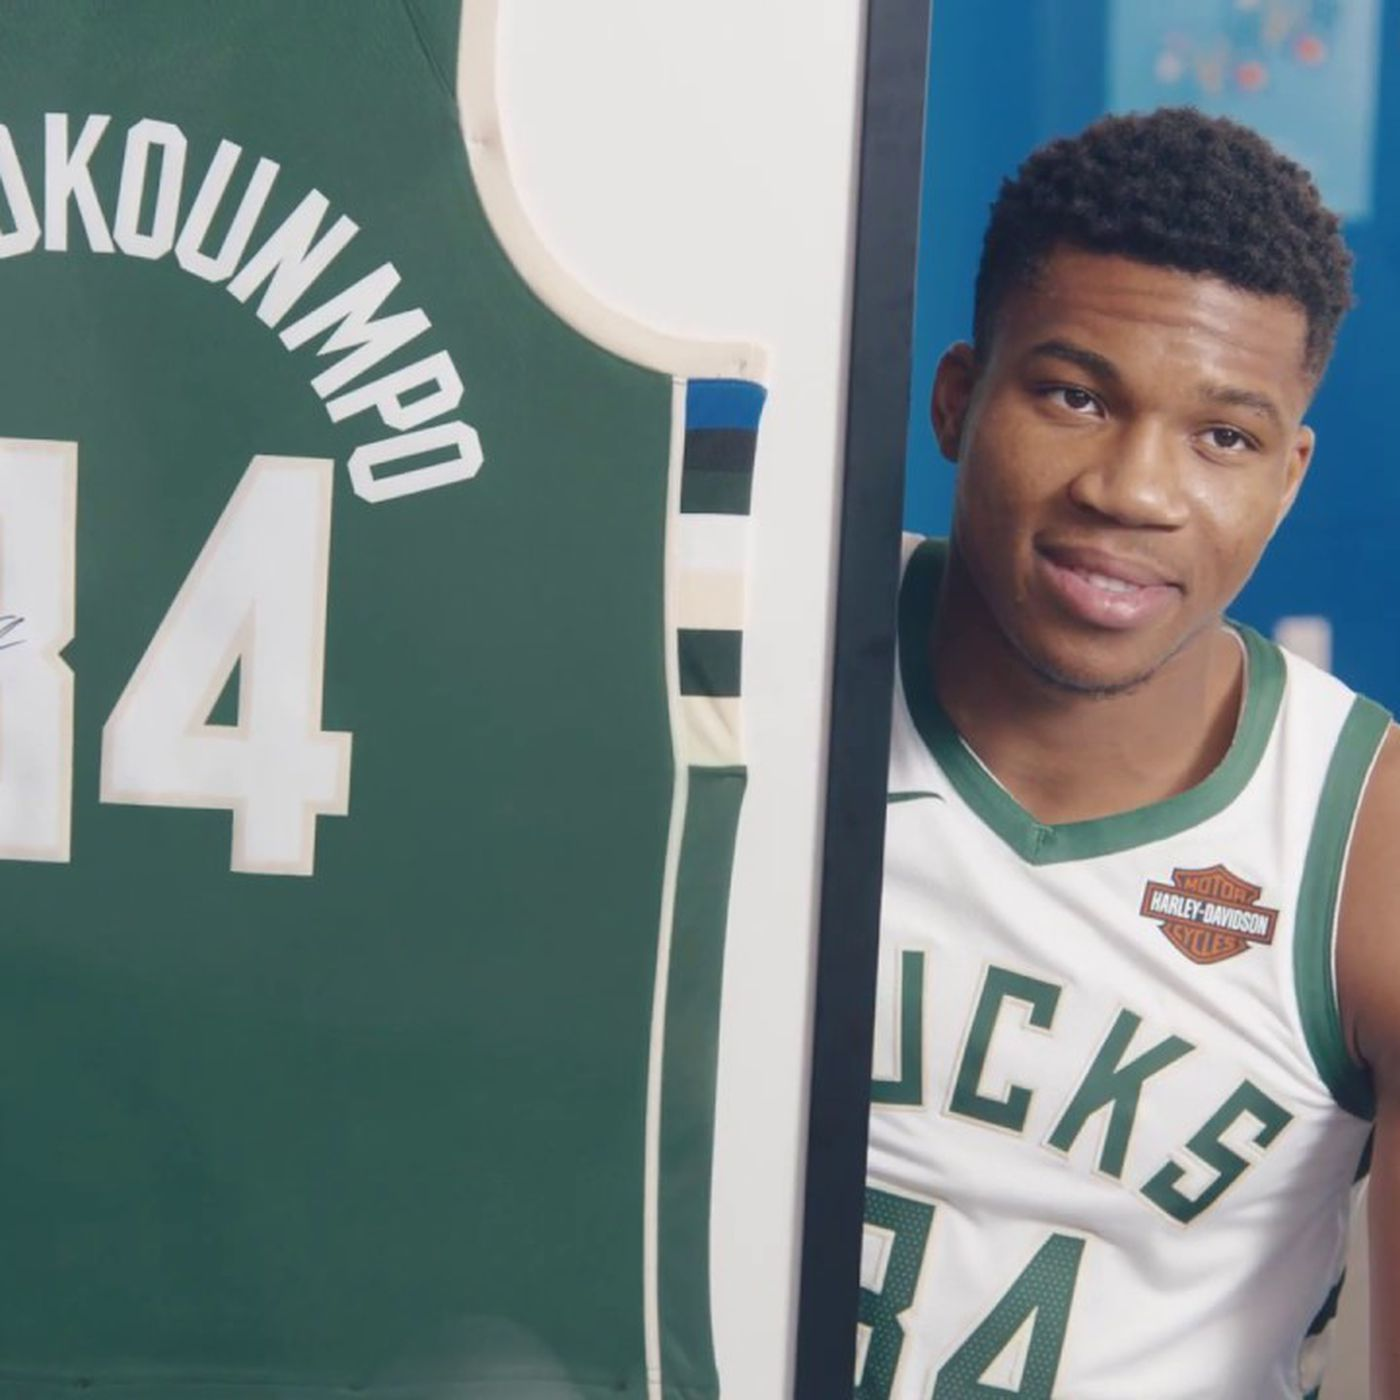 568aa1fd8ac7 Ranking the Best Commercials Featuring Milwaukee Bucks Players - Brew Hoop